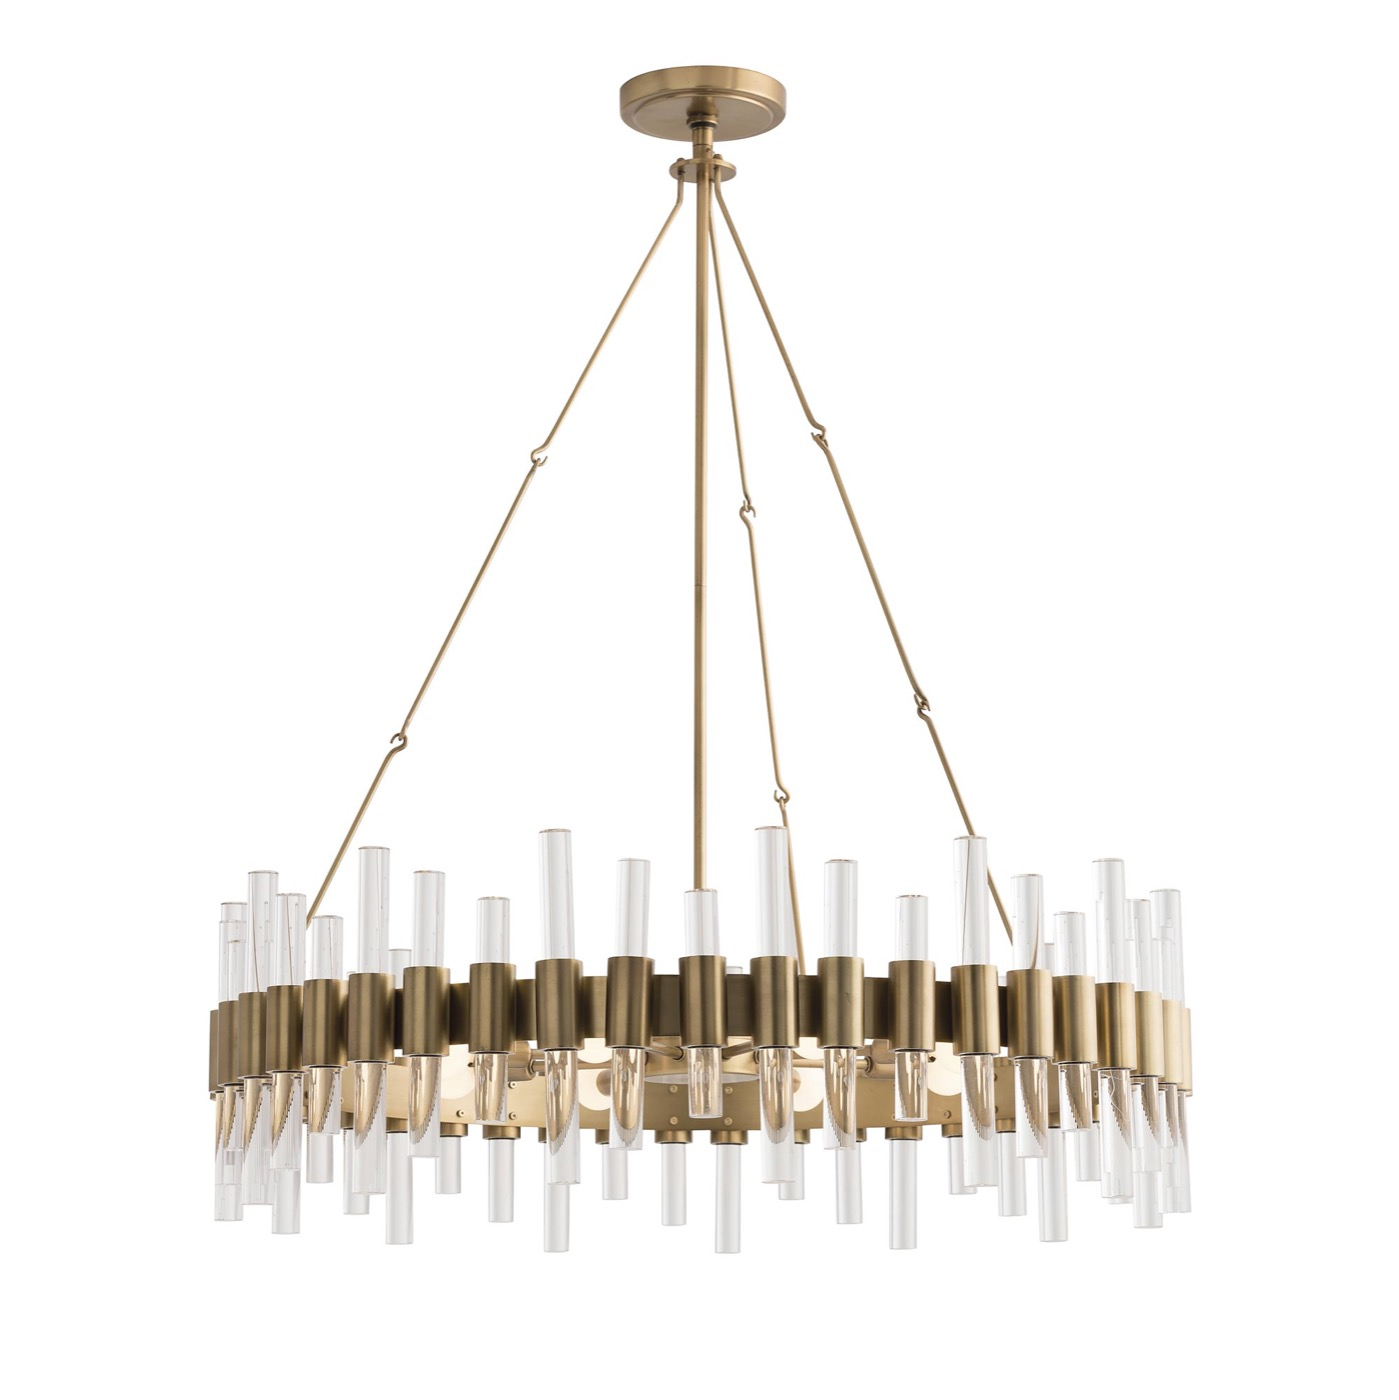 Miskell Brass Amp Lucite Grand Chandelier Round Plantation